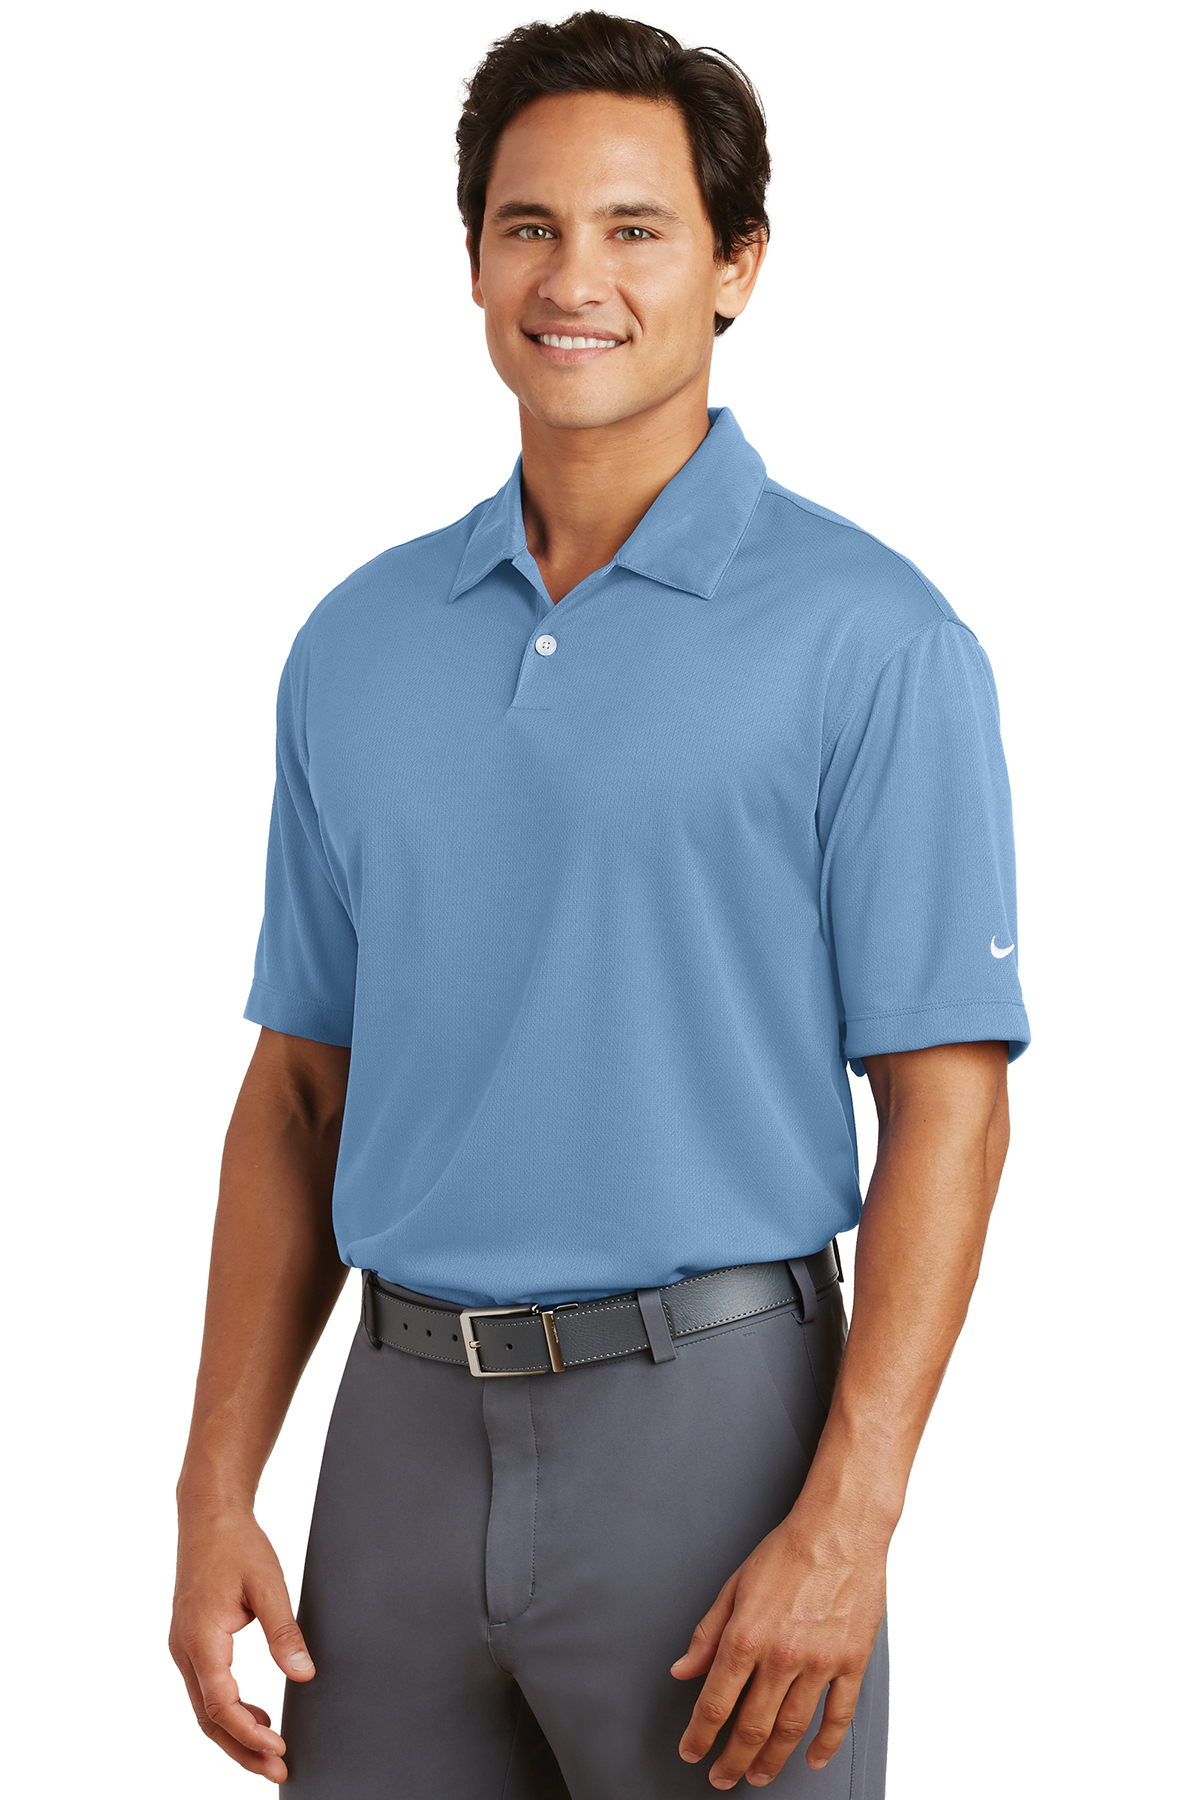 f5d45b93 ... Nike Dri-FIT Pebble Texture Polo. A maximum of 8 logos have been  uploaded. Please remove a logo from My Logos to continue